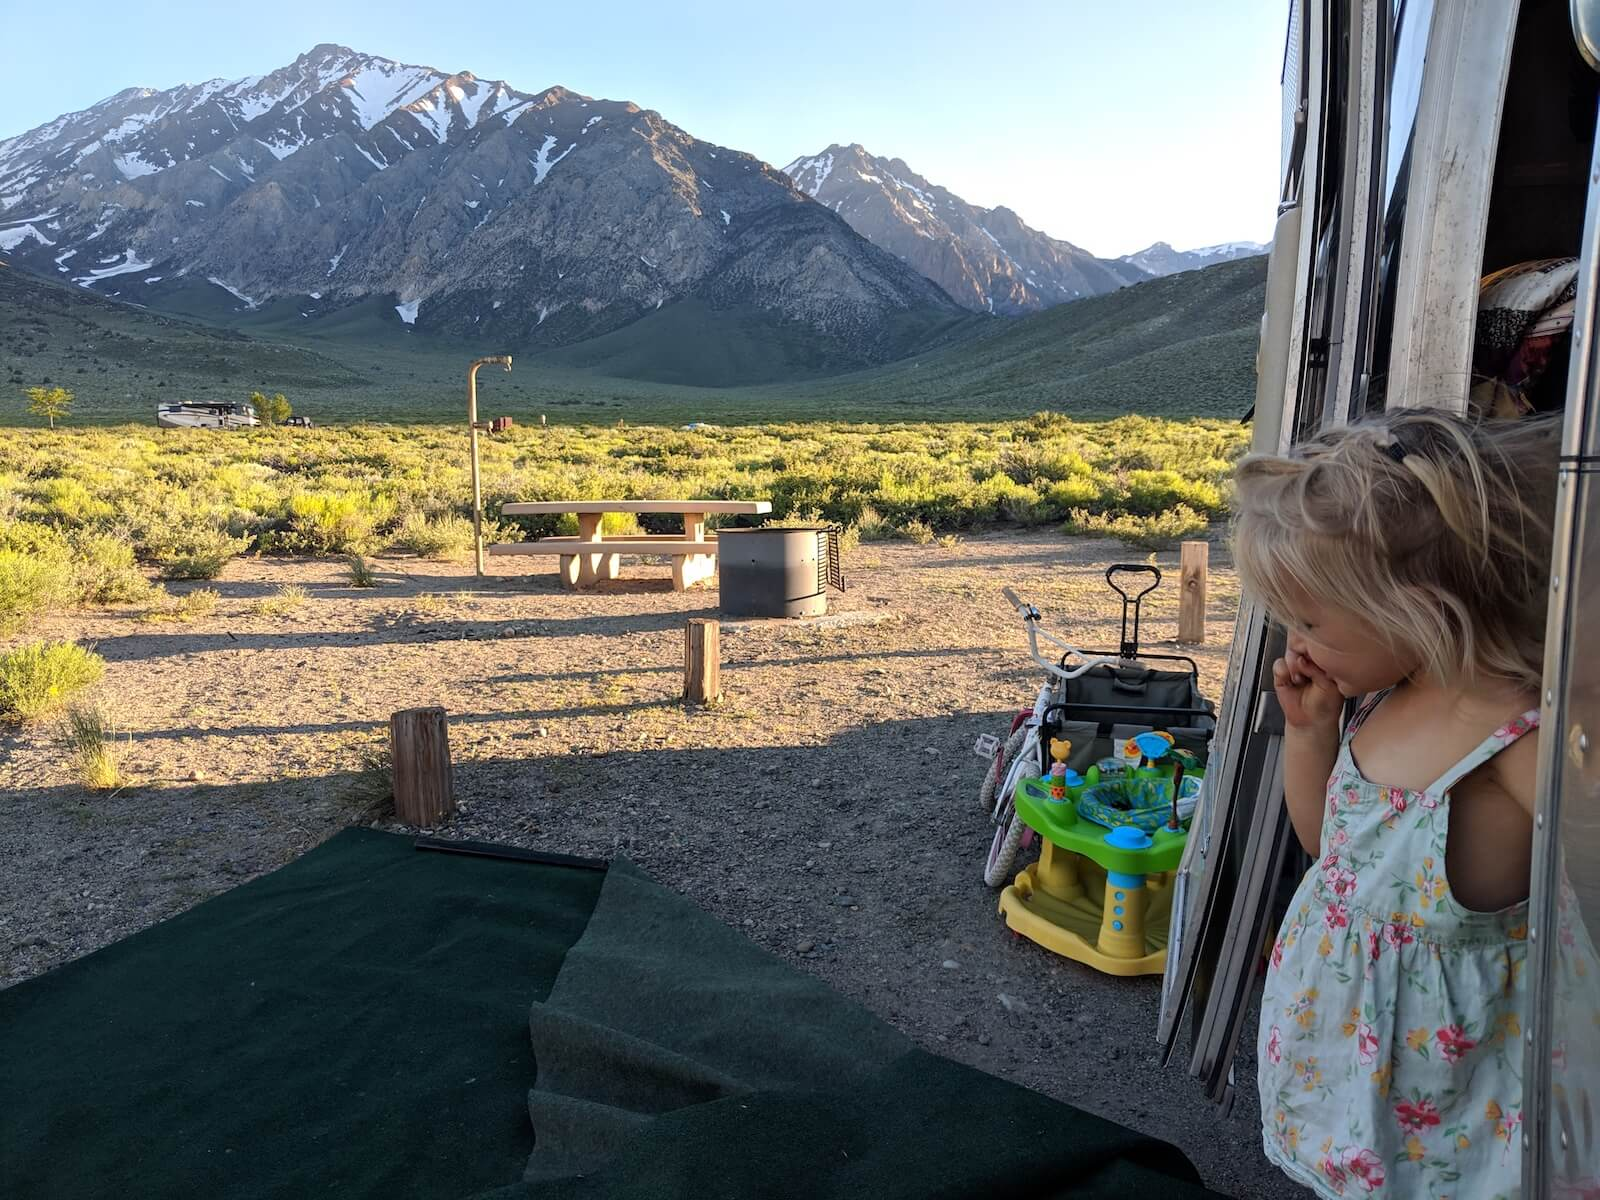 little girl stepping out of airstream door with mountains and grassy field in the background travel nursing in an RV